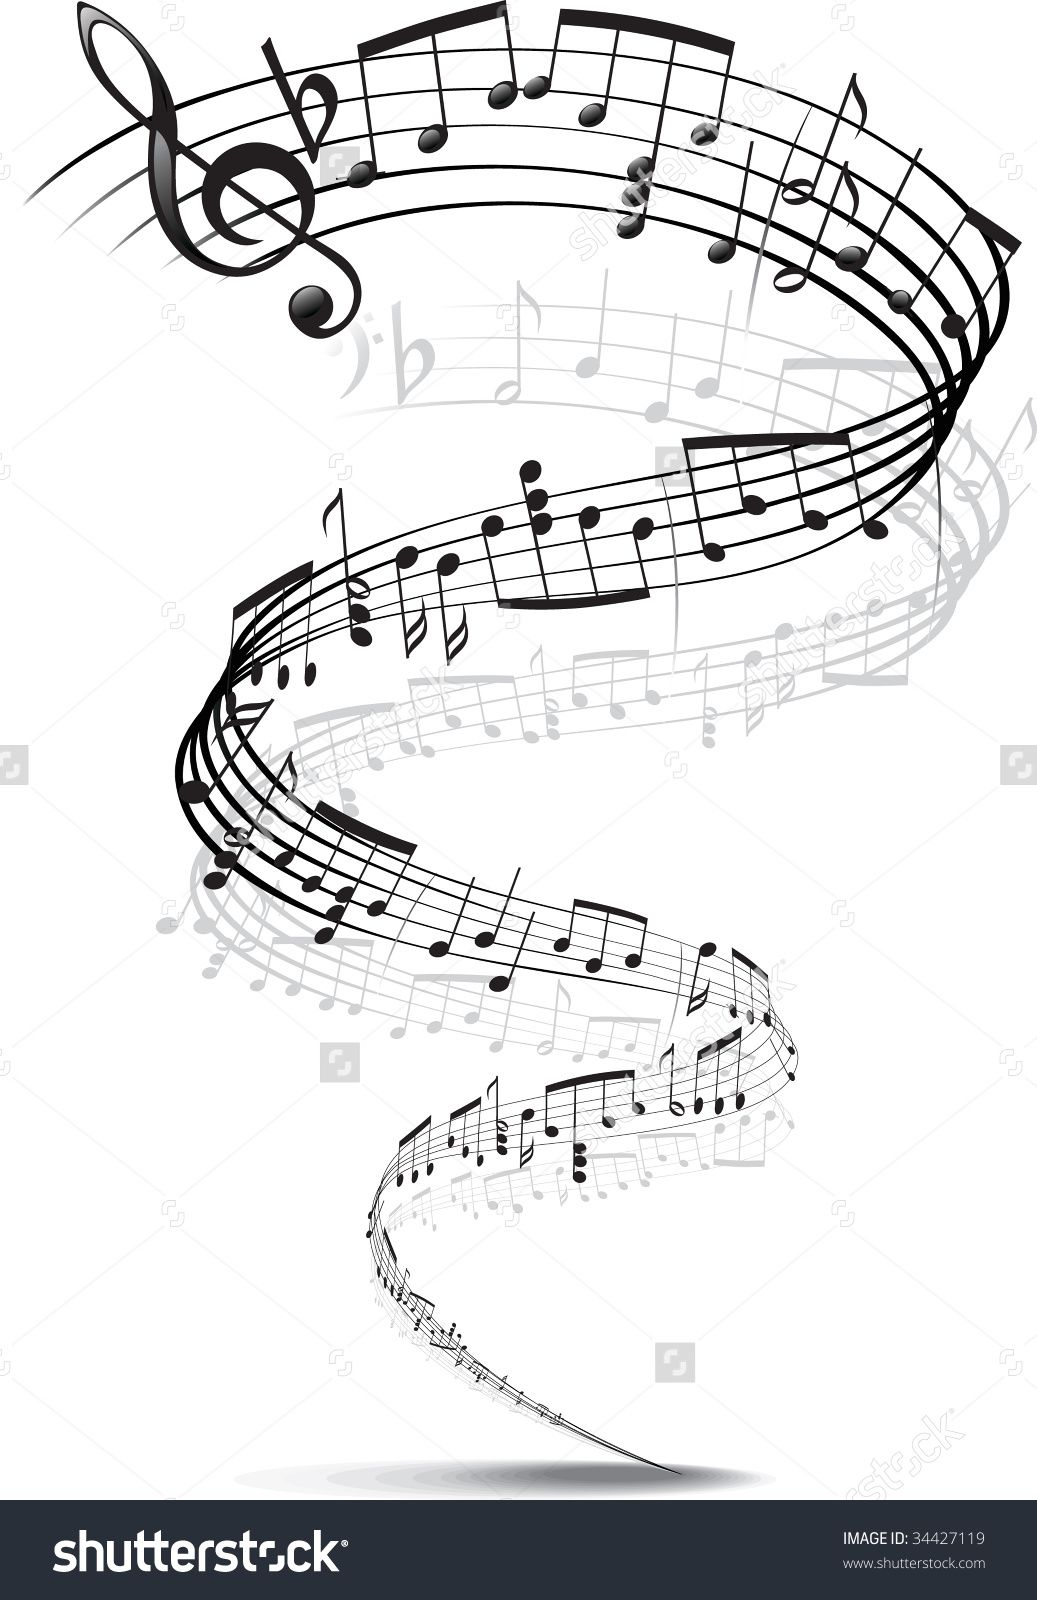 music notes twisted into a spiral music coloring pages for